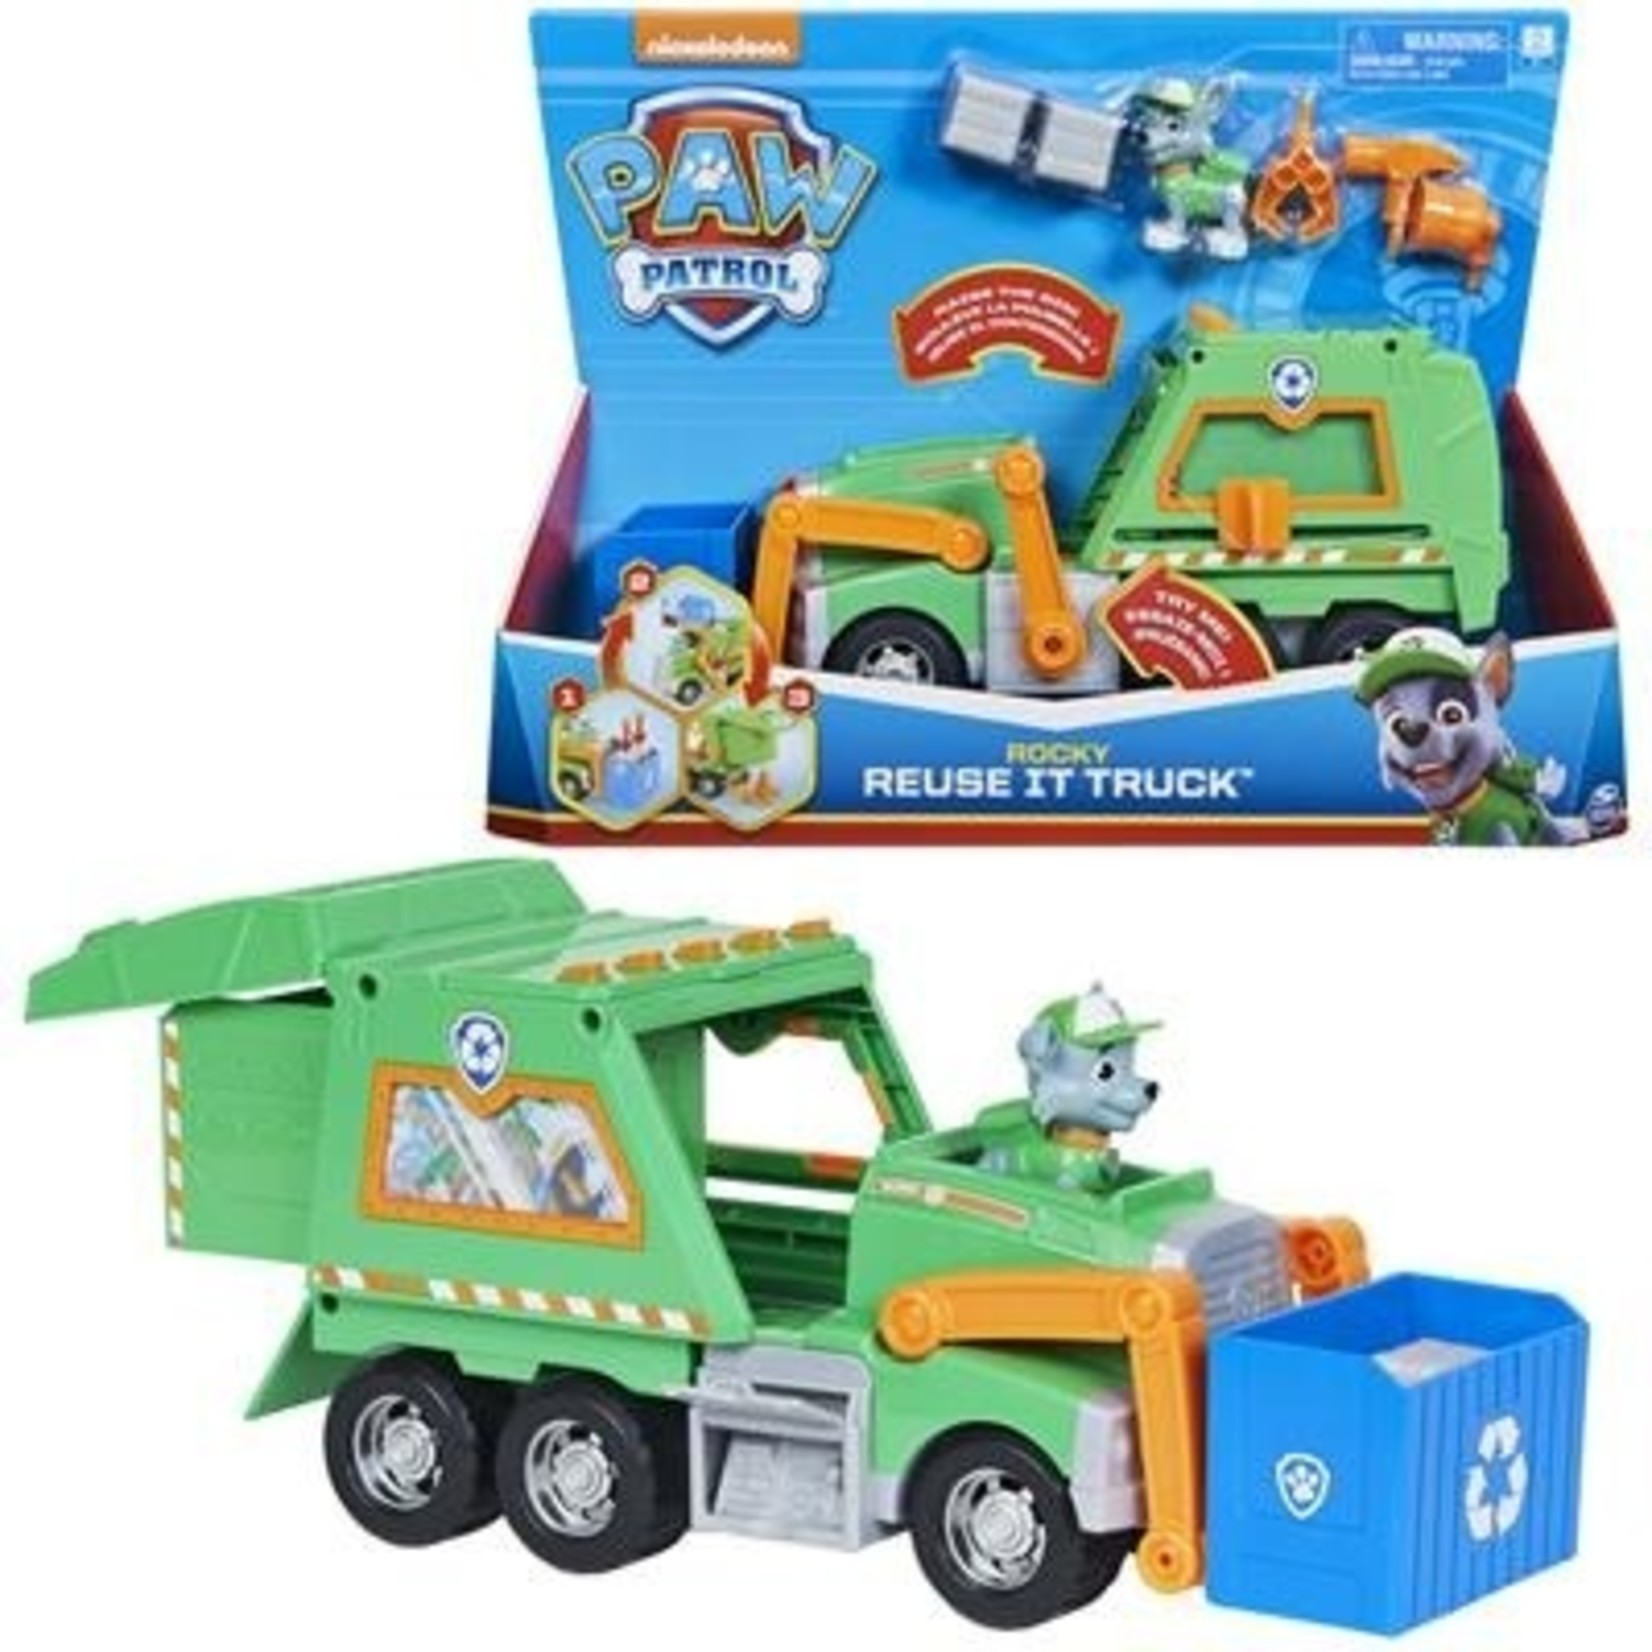 Spin Master Paw Patrol Rocky's Re-Use It Truck